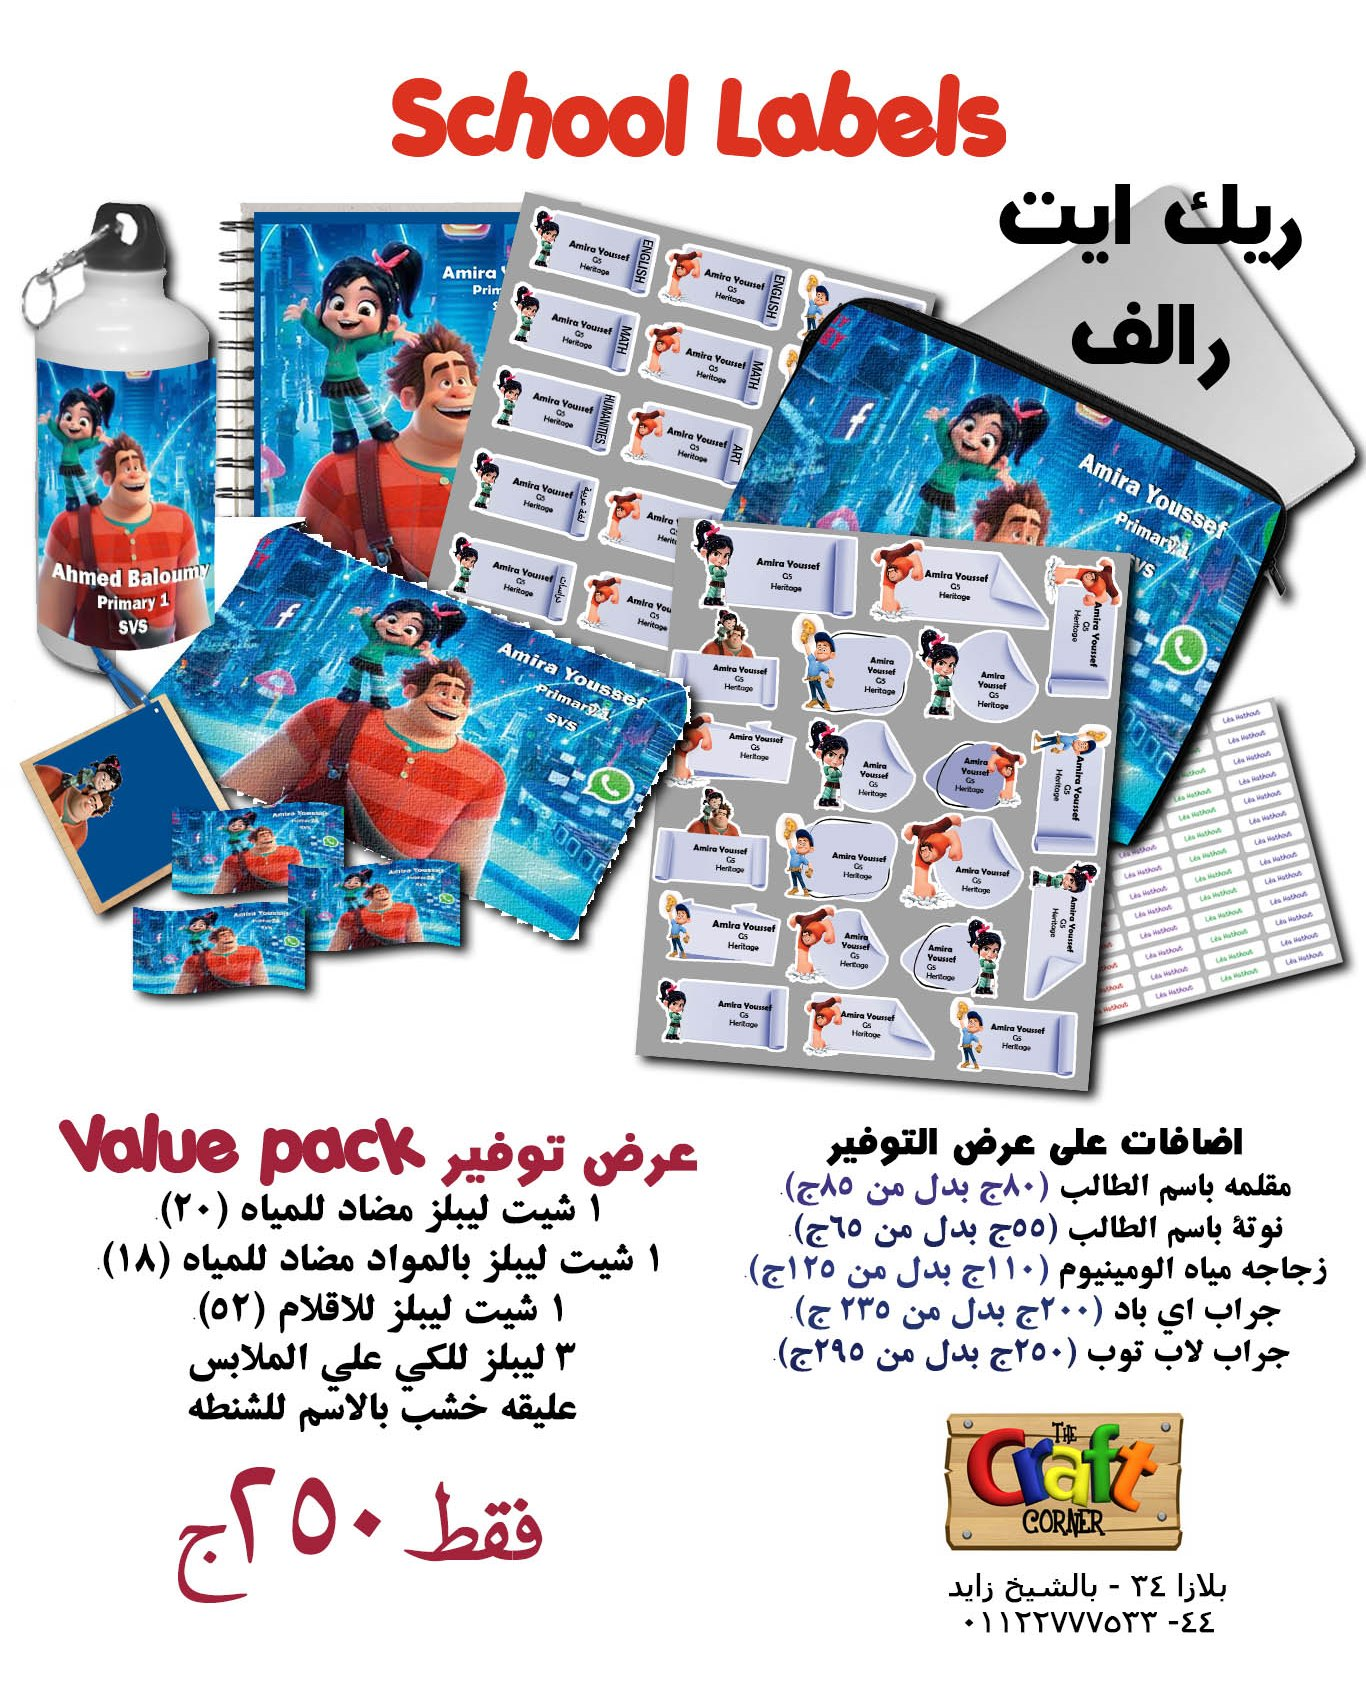 Wreck it ralph ad arabic